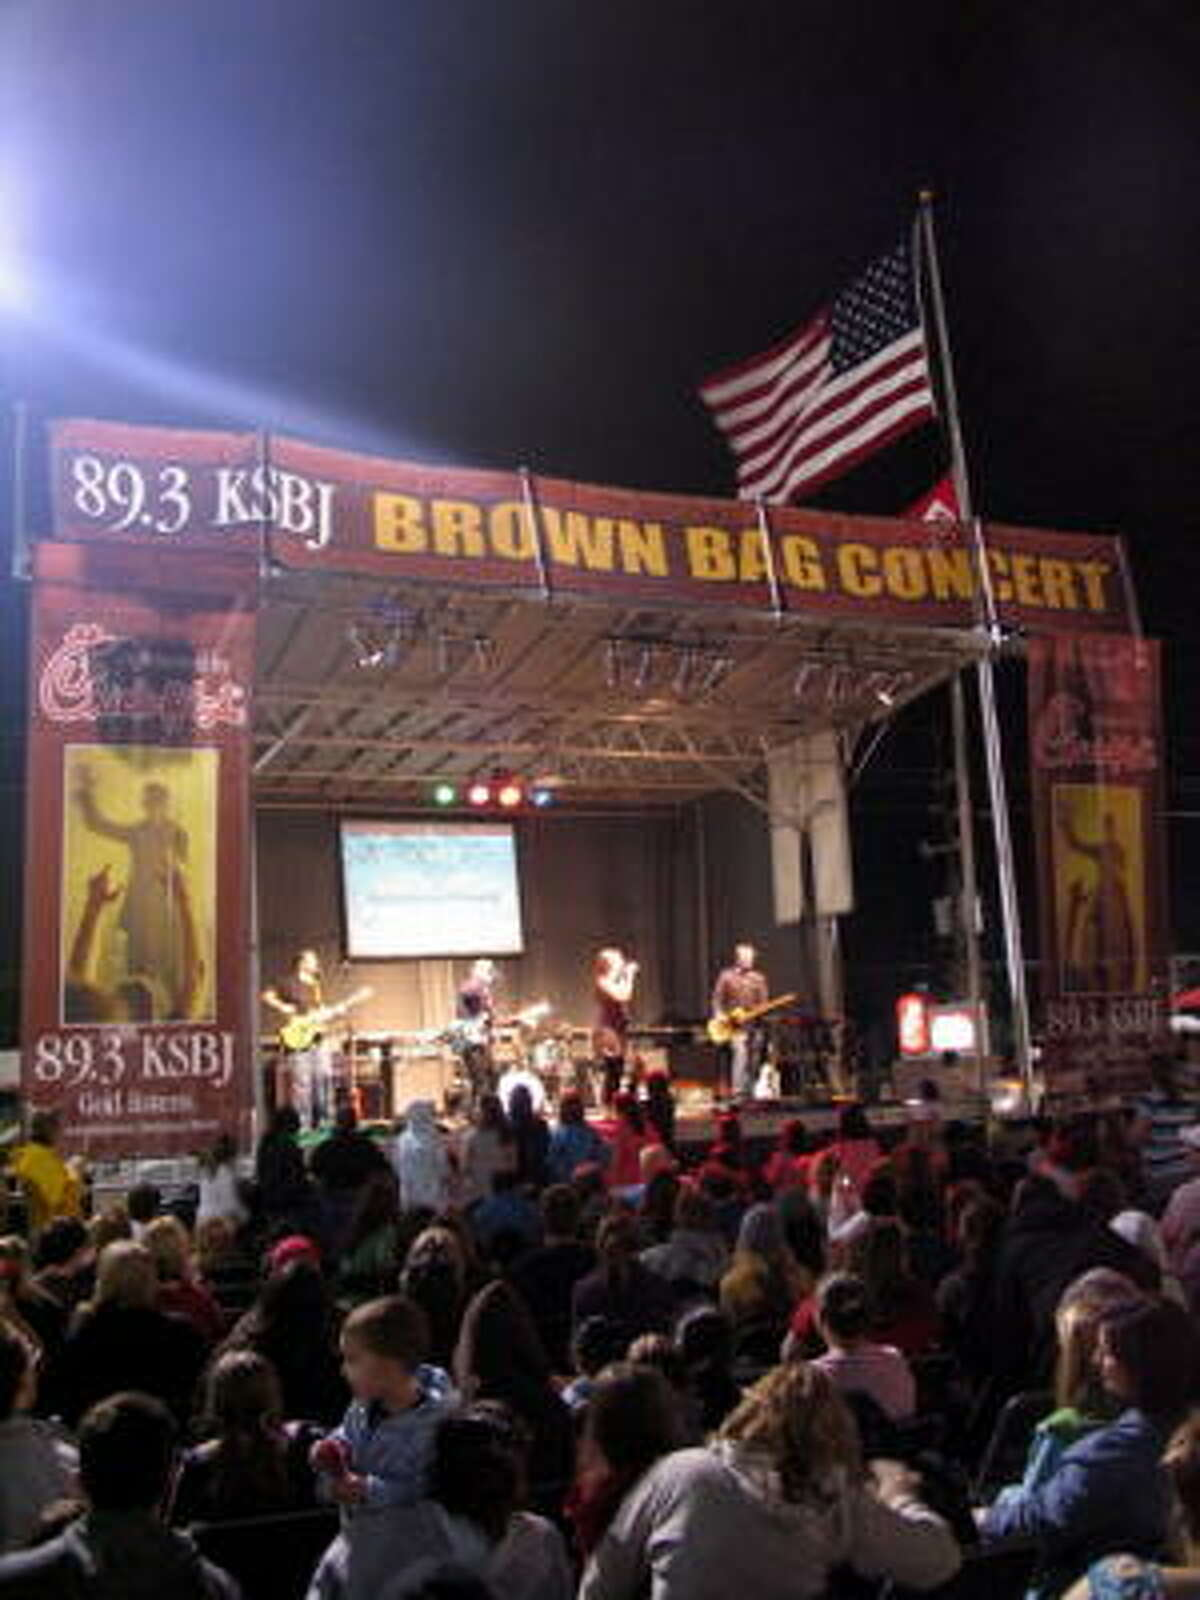 Addison Road performs at Tuesday night's 89.3 KSBJ Brown Bag Concert, which was sponsored by Chick-fil-A at 2920 and Kuykendahl in Spring. Chick-fil-A has sponsored KSBJ's Brown Bag Concert series for more than 15 years.